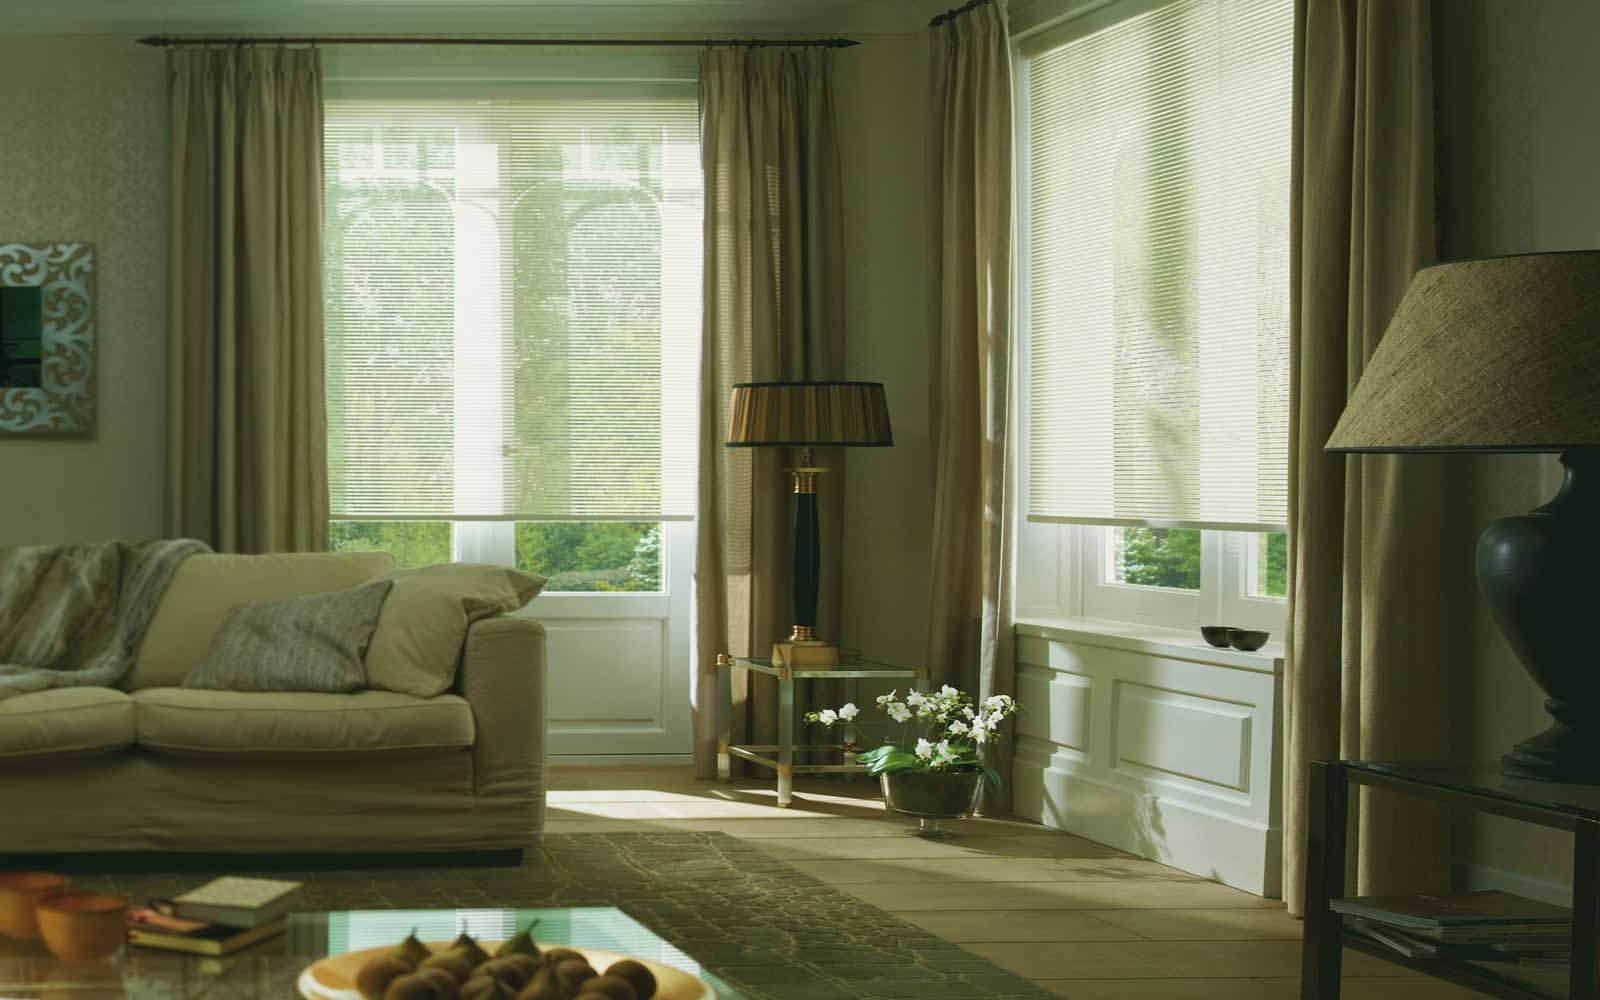 Roman Blinds Surrey Blinds Shutters With Voile Roman Blinds (View 12 of 15)